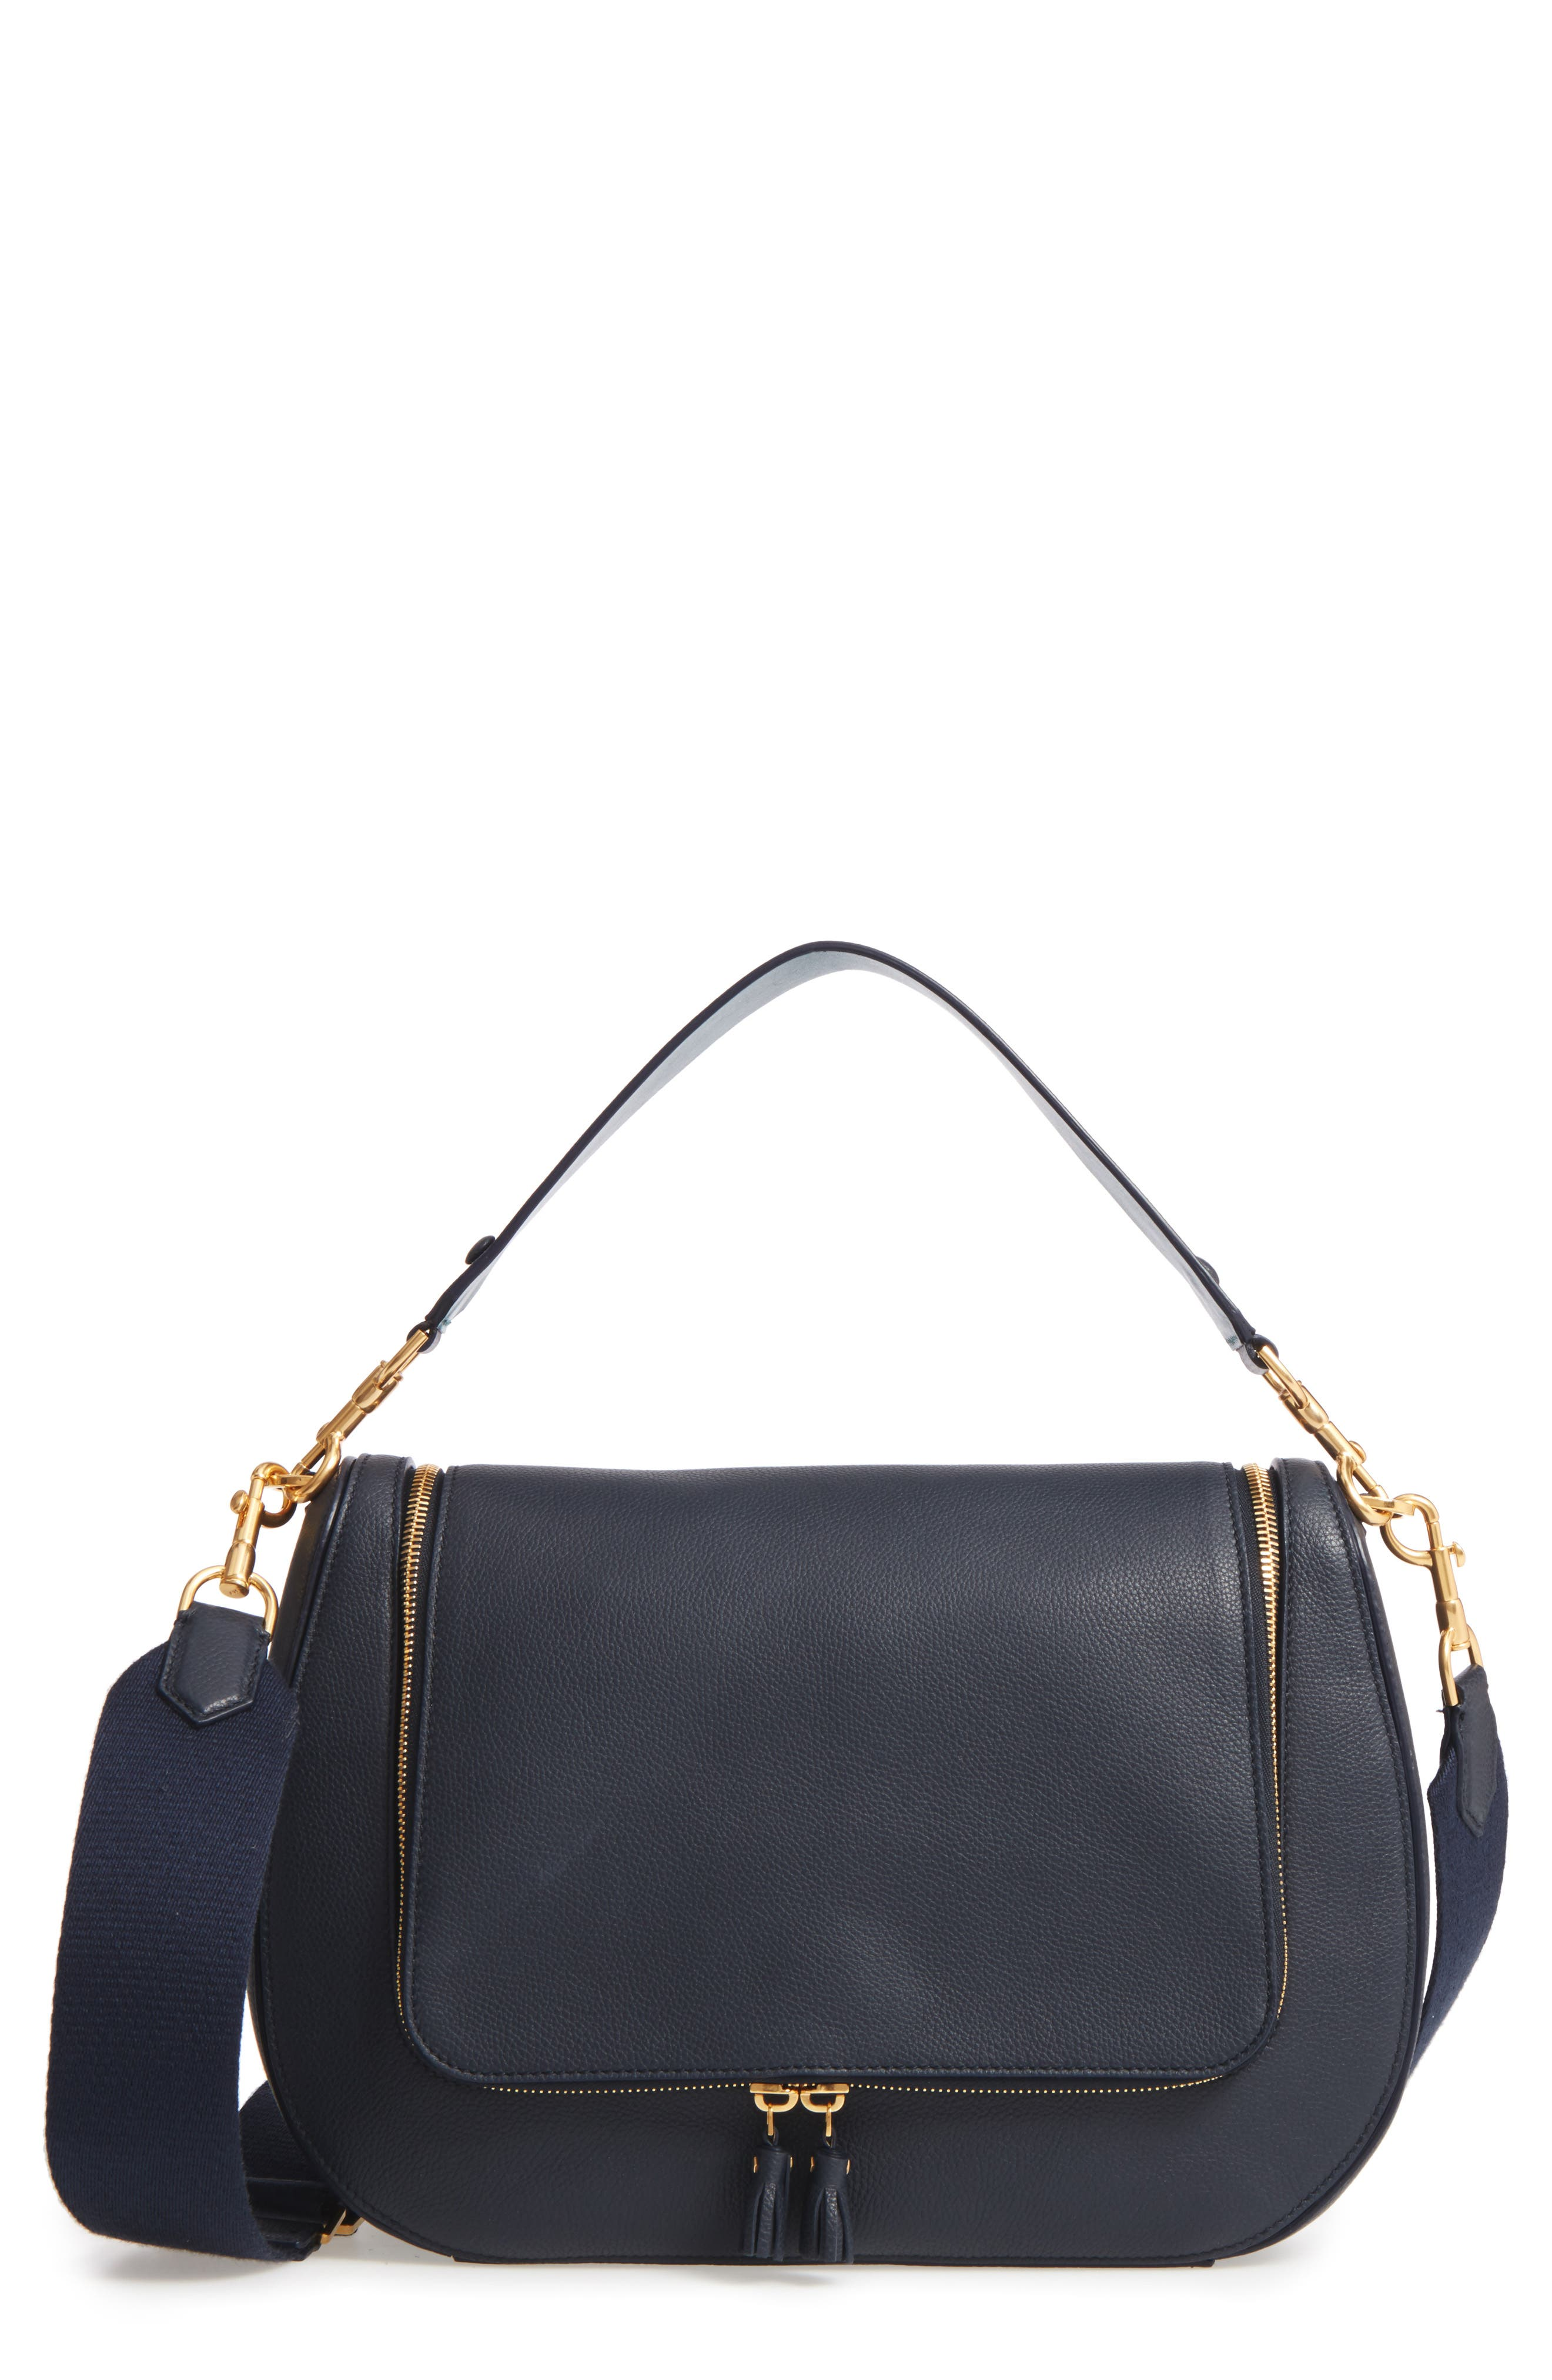 Anya Hindmarch Vere Maxi Leather Satchel